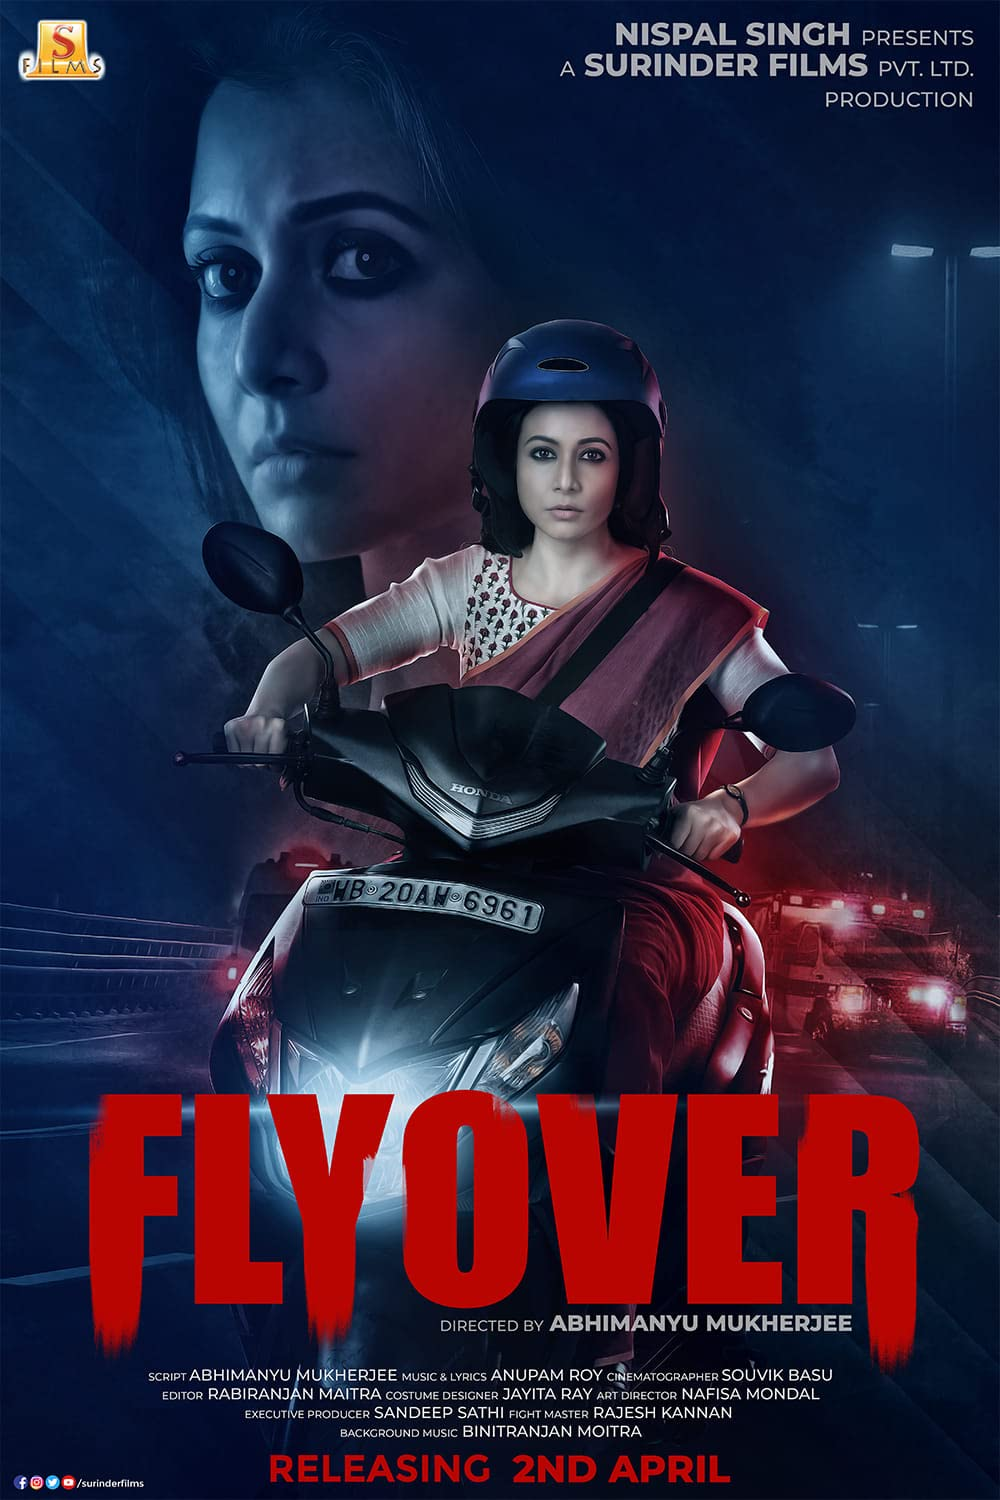 Flyover 2021 Bengali Full Movie 720p HDRip 700MB Download *Exclusive*